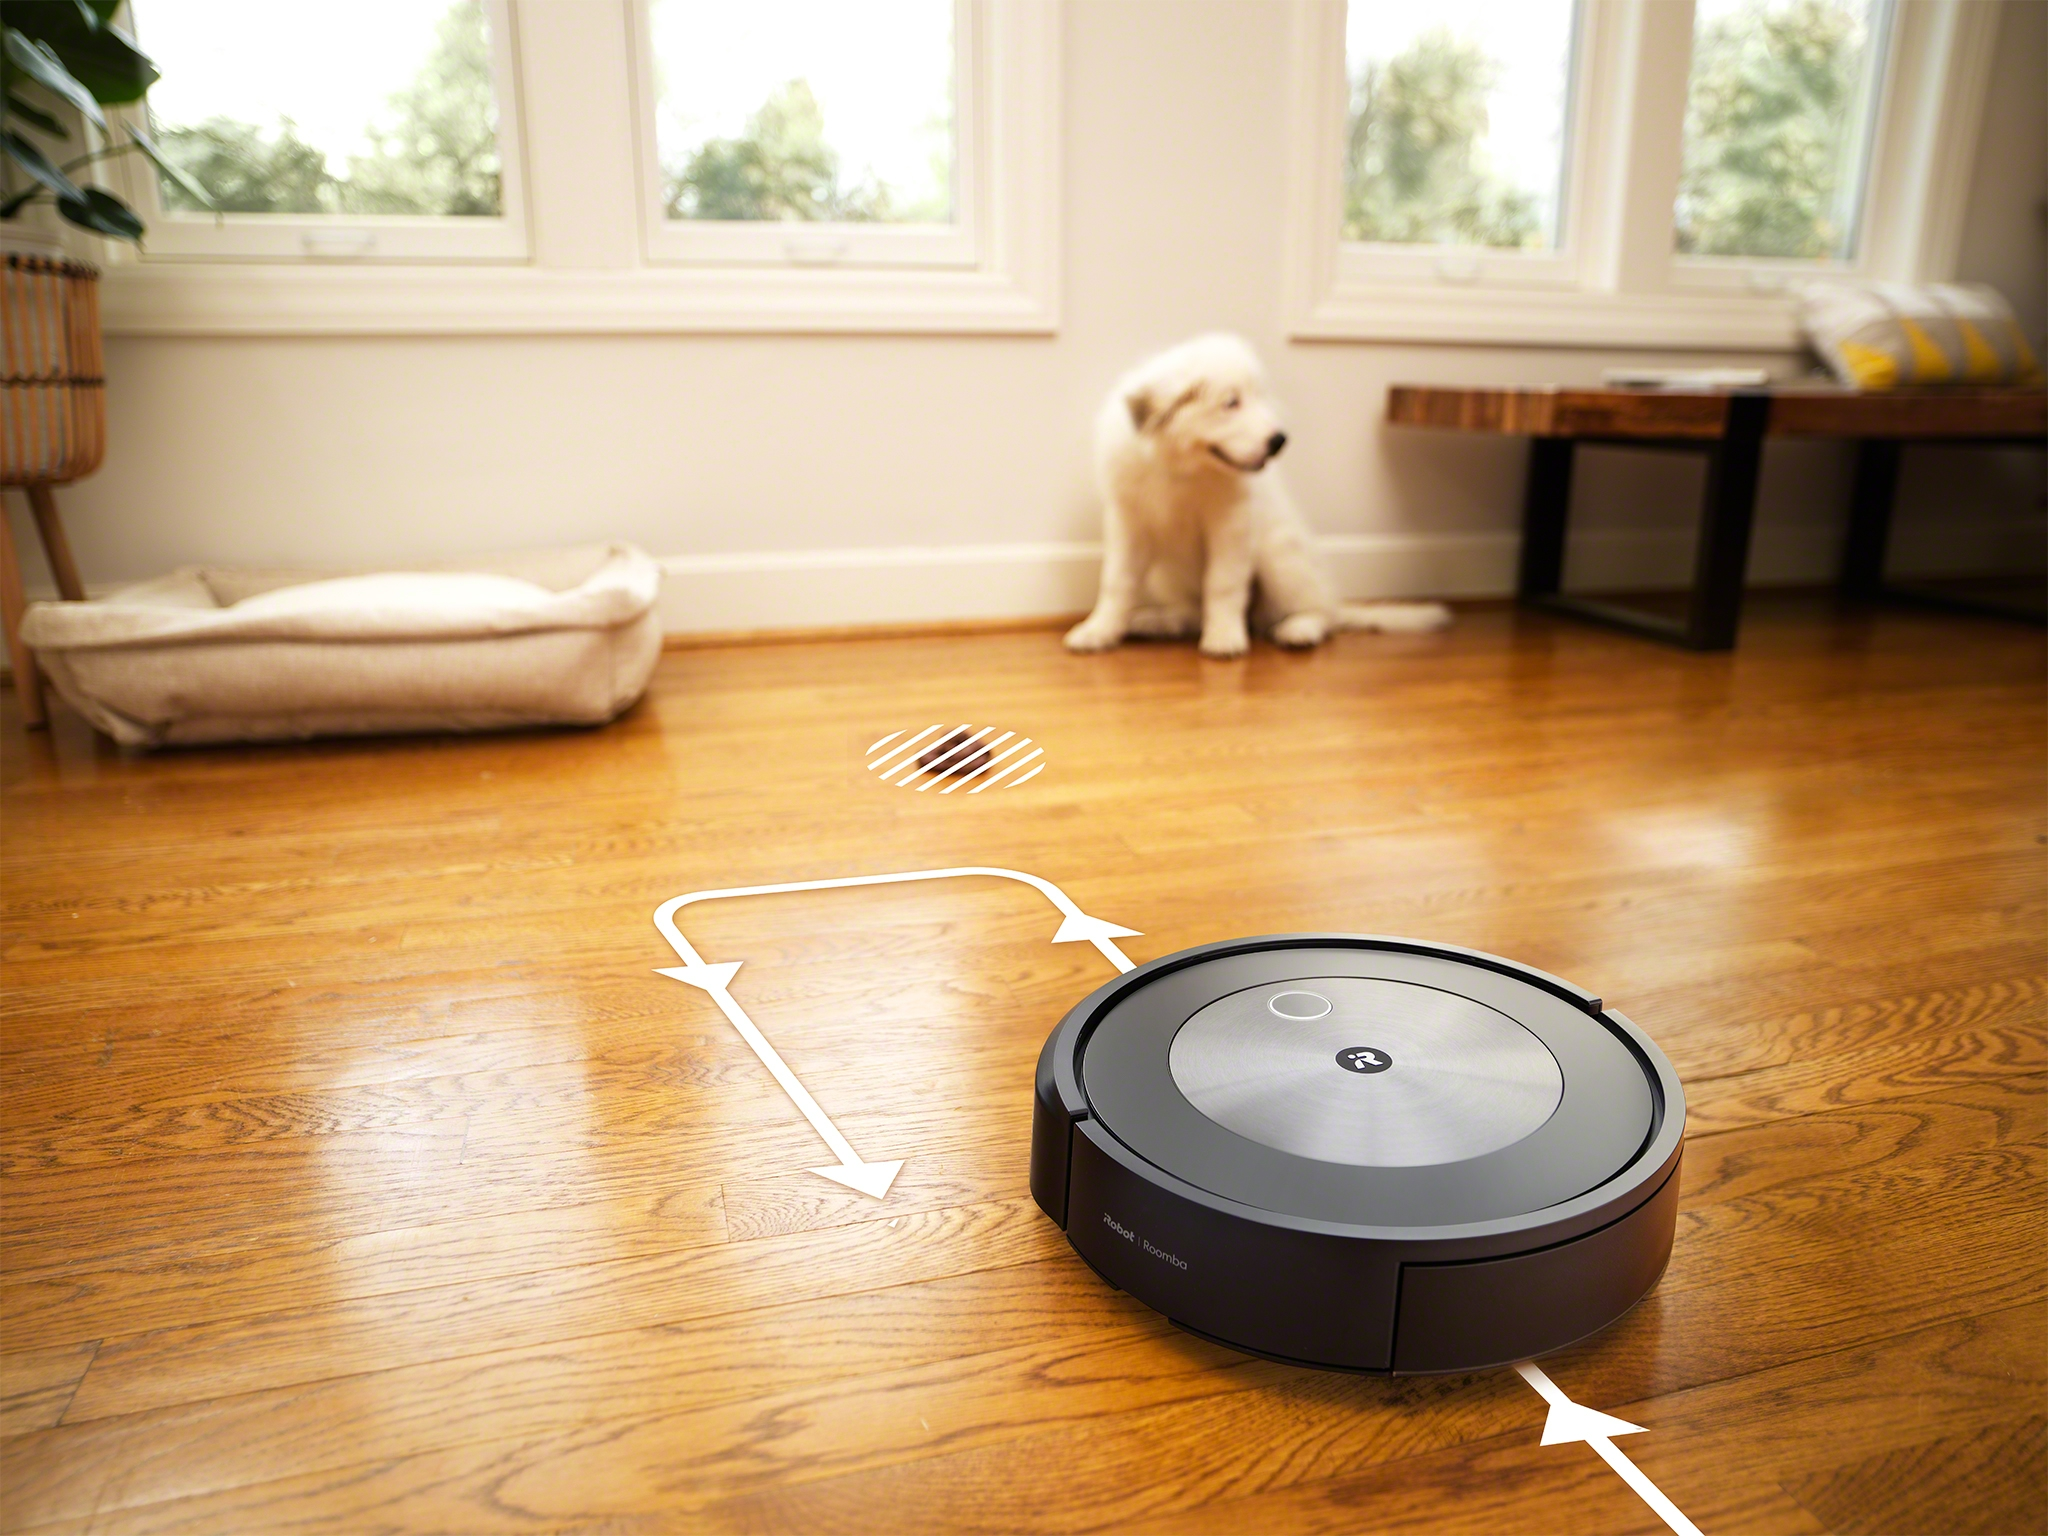 roomba-j7-j7-object-detection-pet-waste